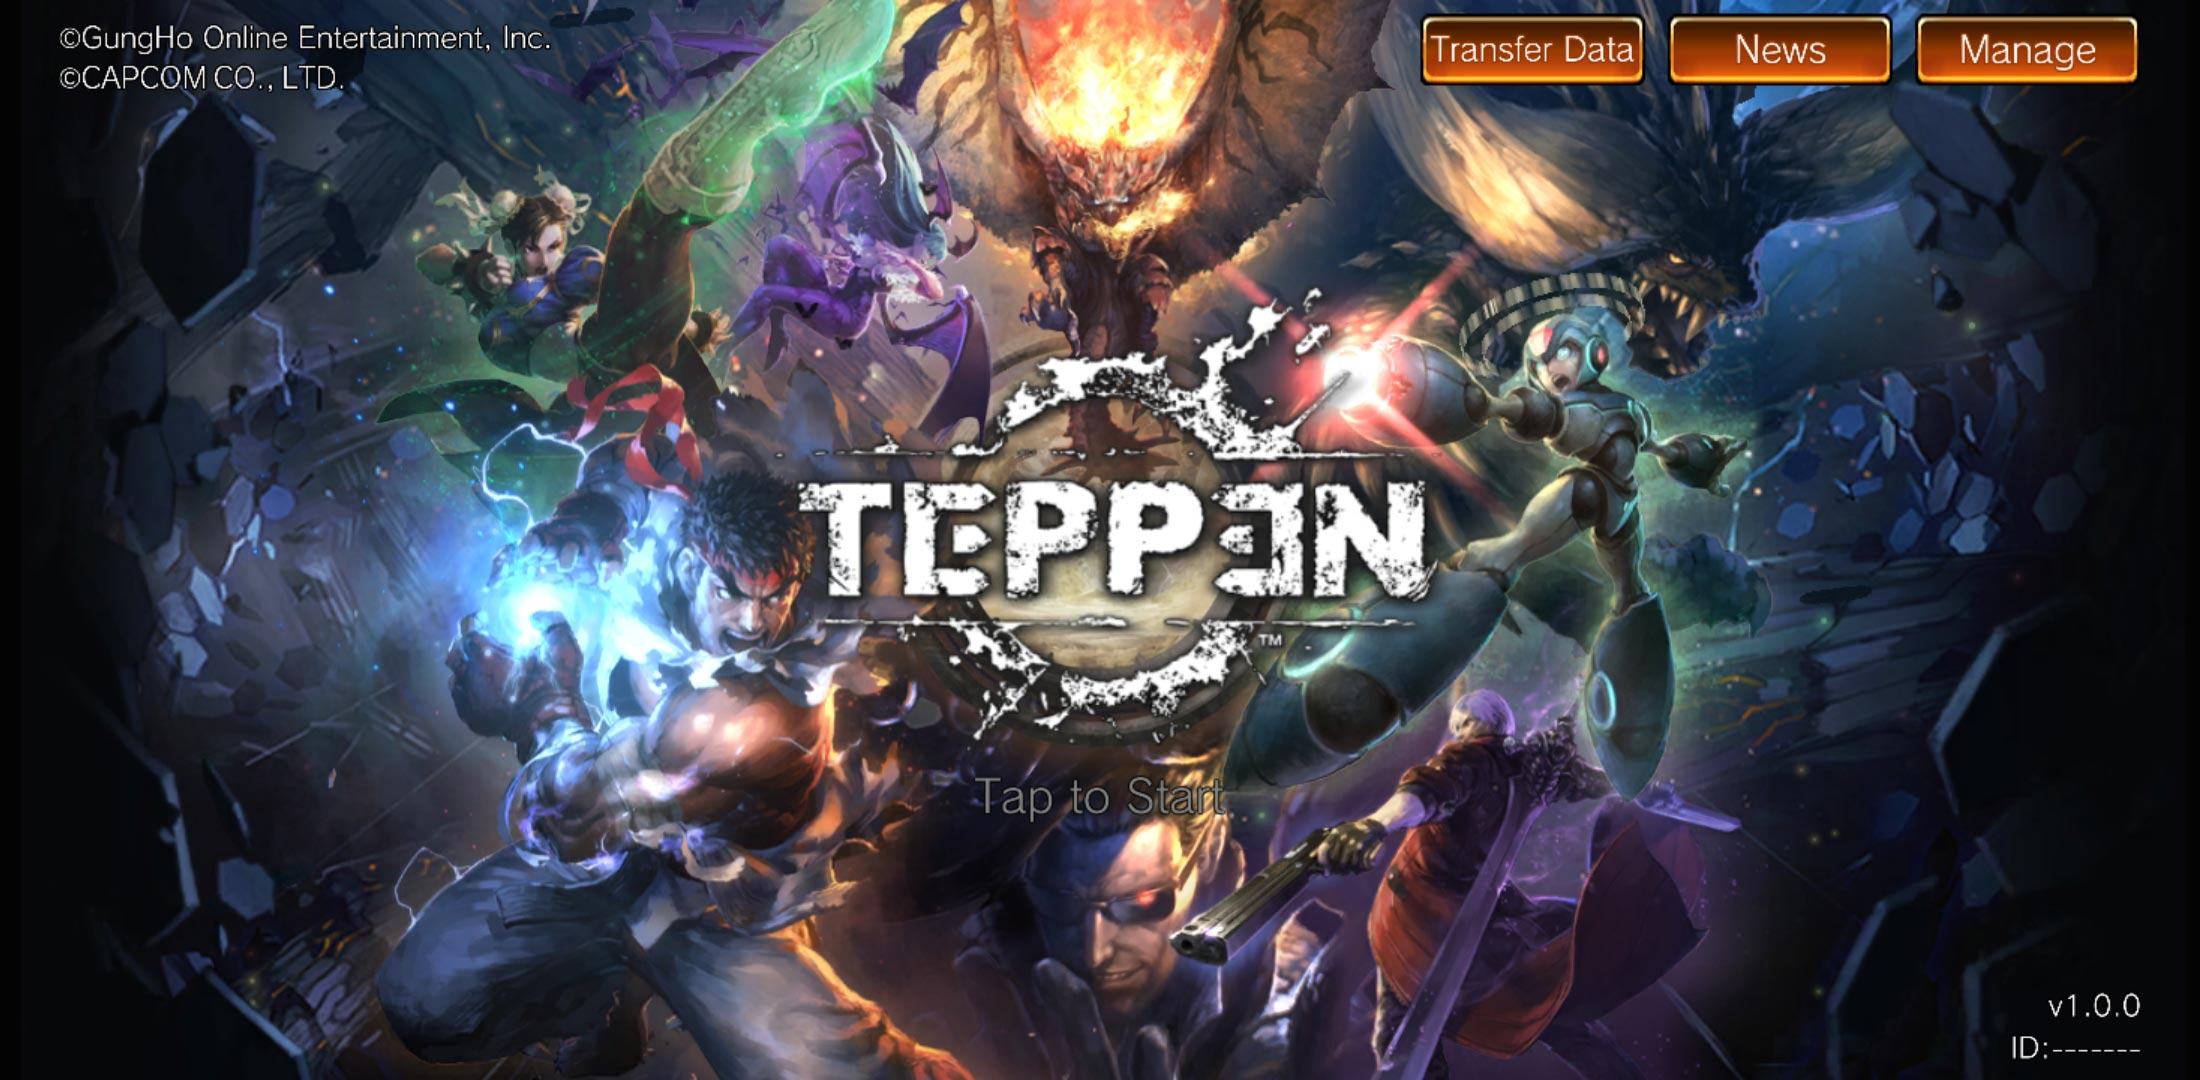 Teppen launch 1 out of 6 image gallery